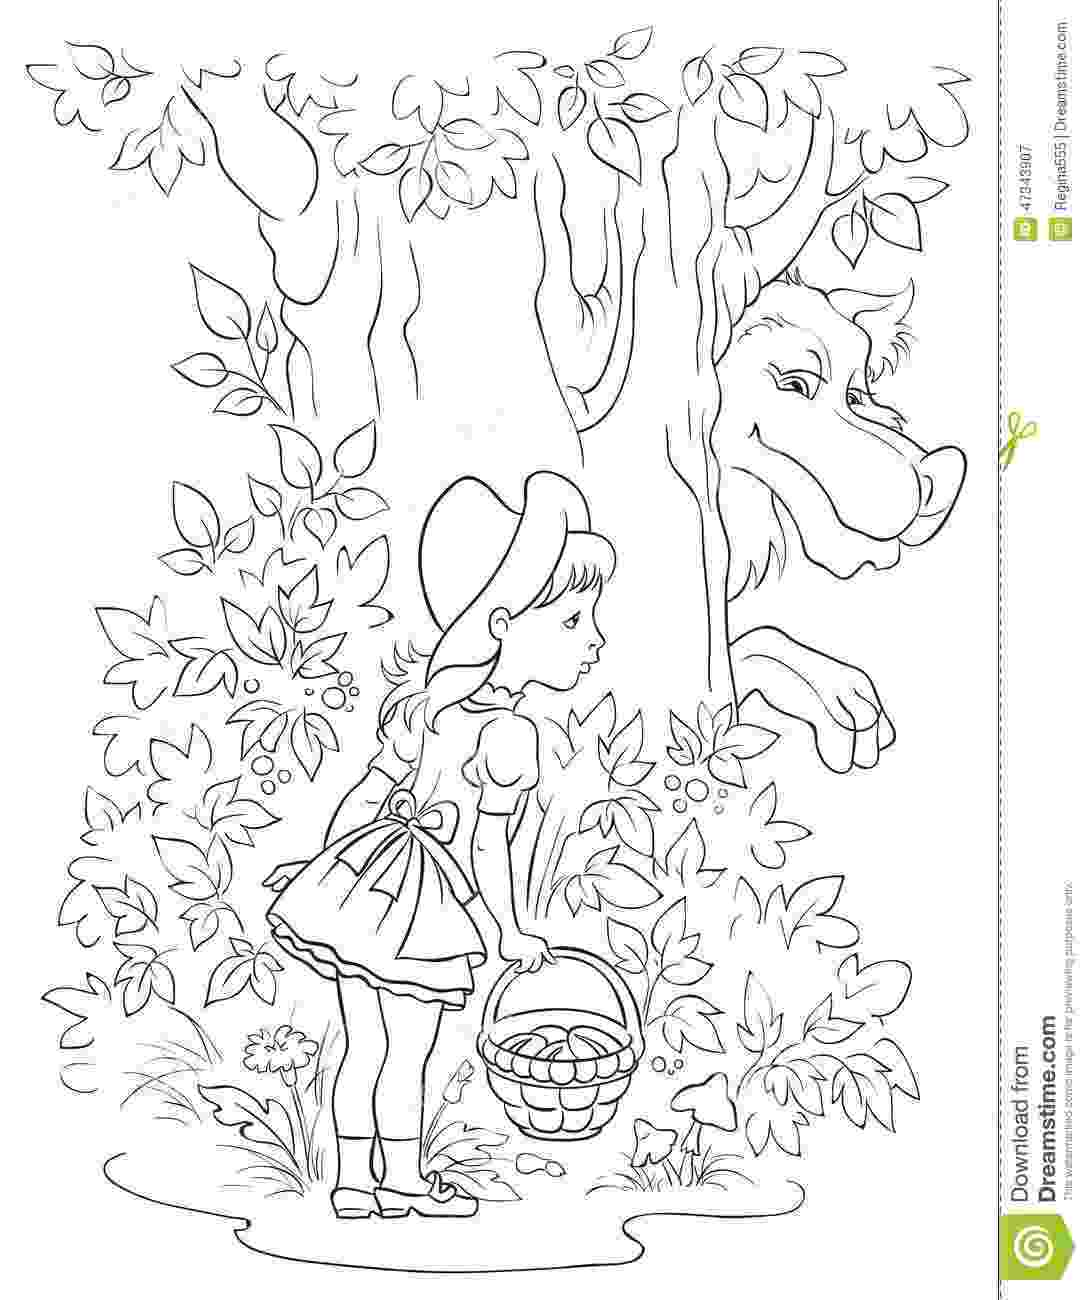 colouring sheet little red riding hood top 10 free printable little red riding hood coloring sheet red little hood colouring riding